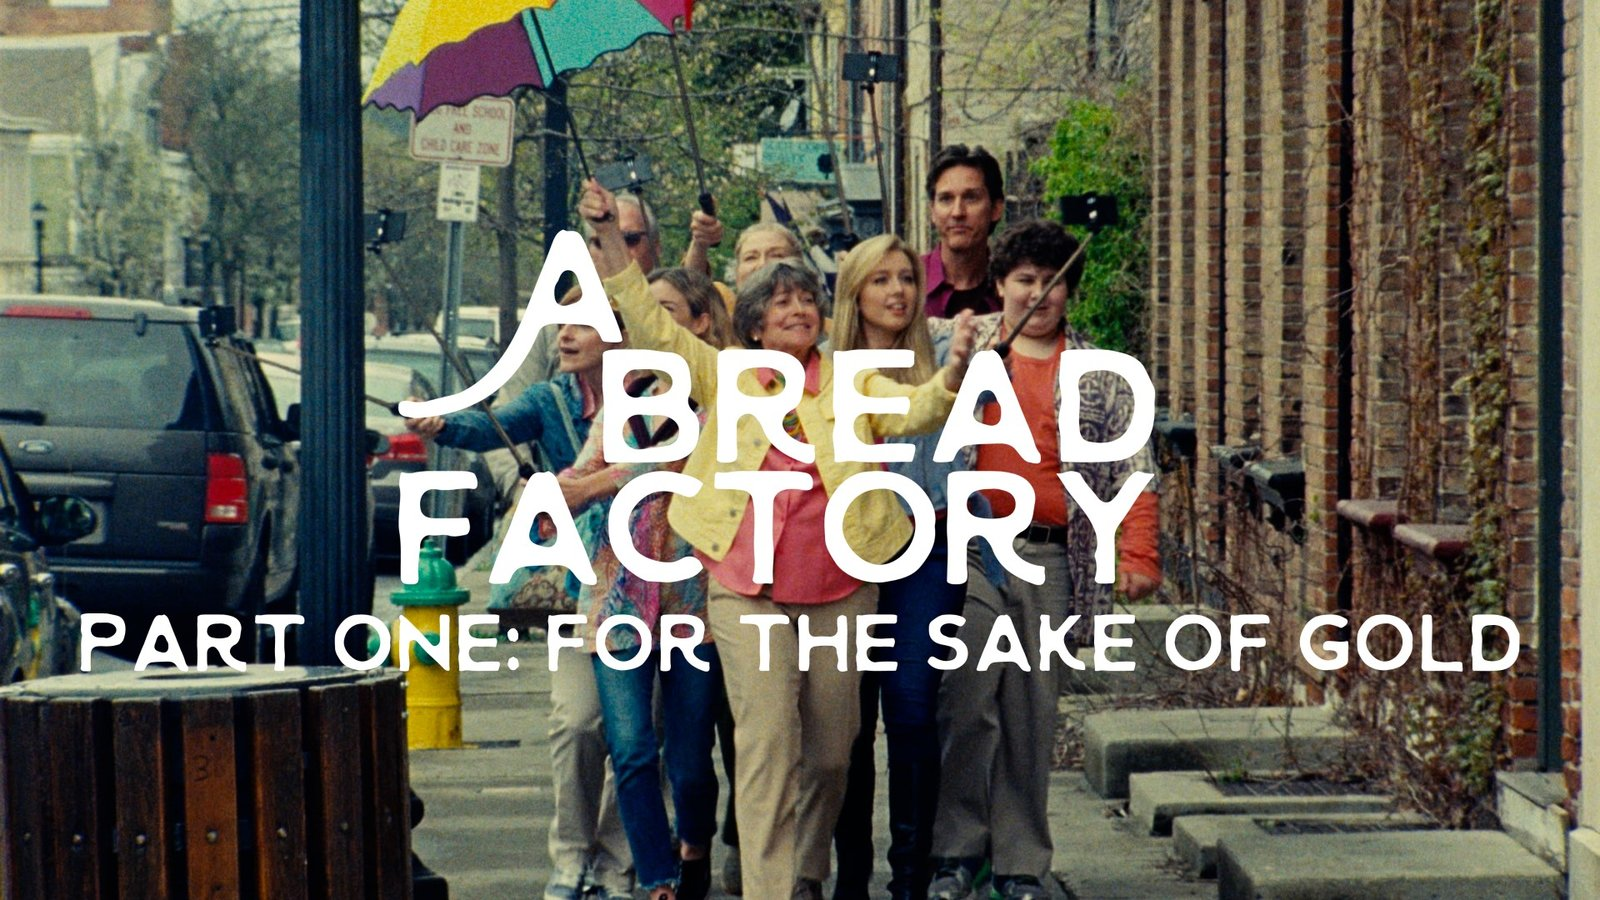 A Bread Factory, Part 1